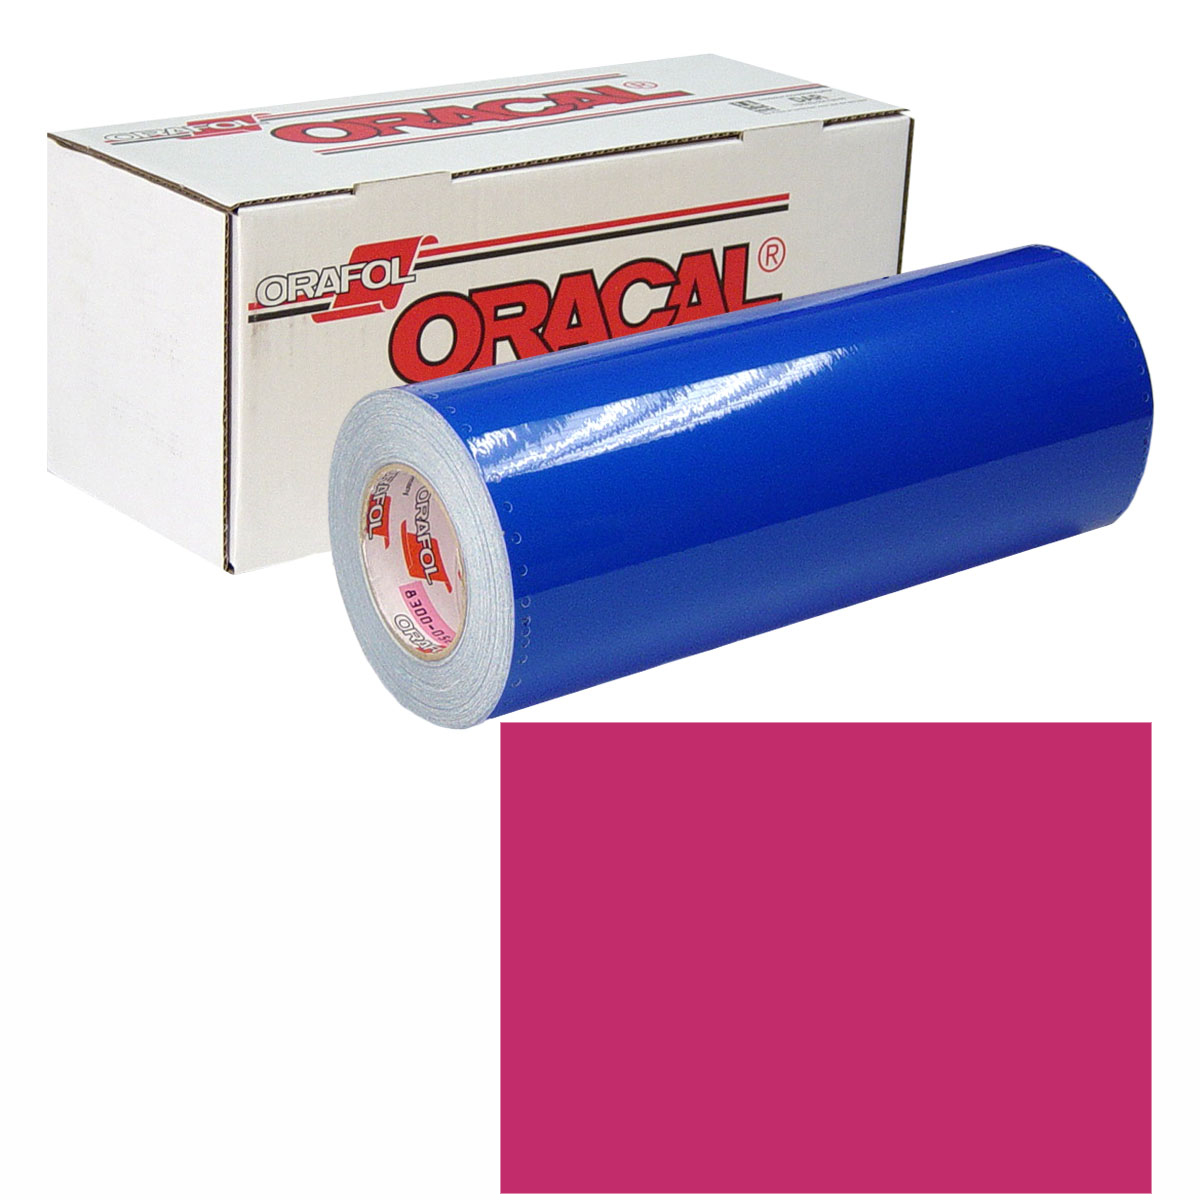 ORACAL 631 15in X 10yd 041 Pink